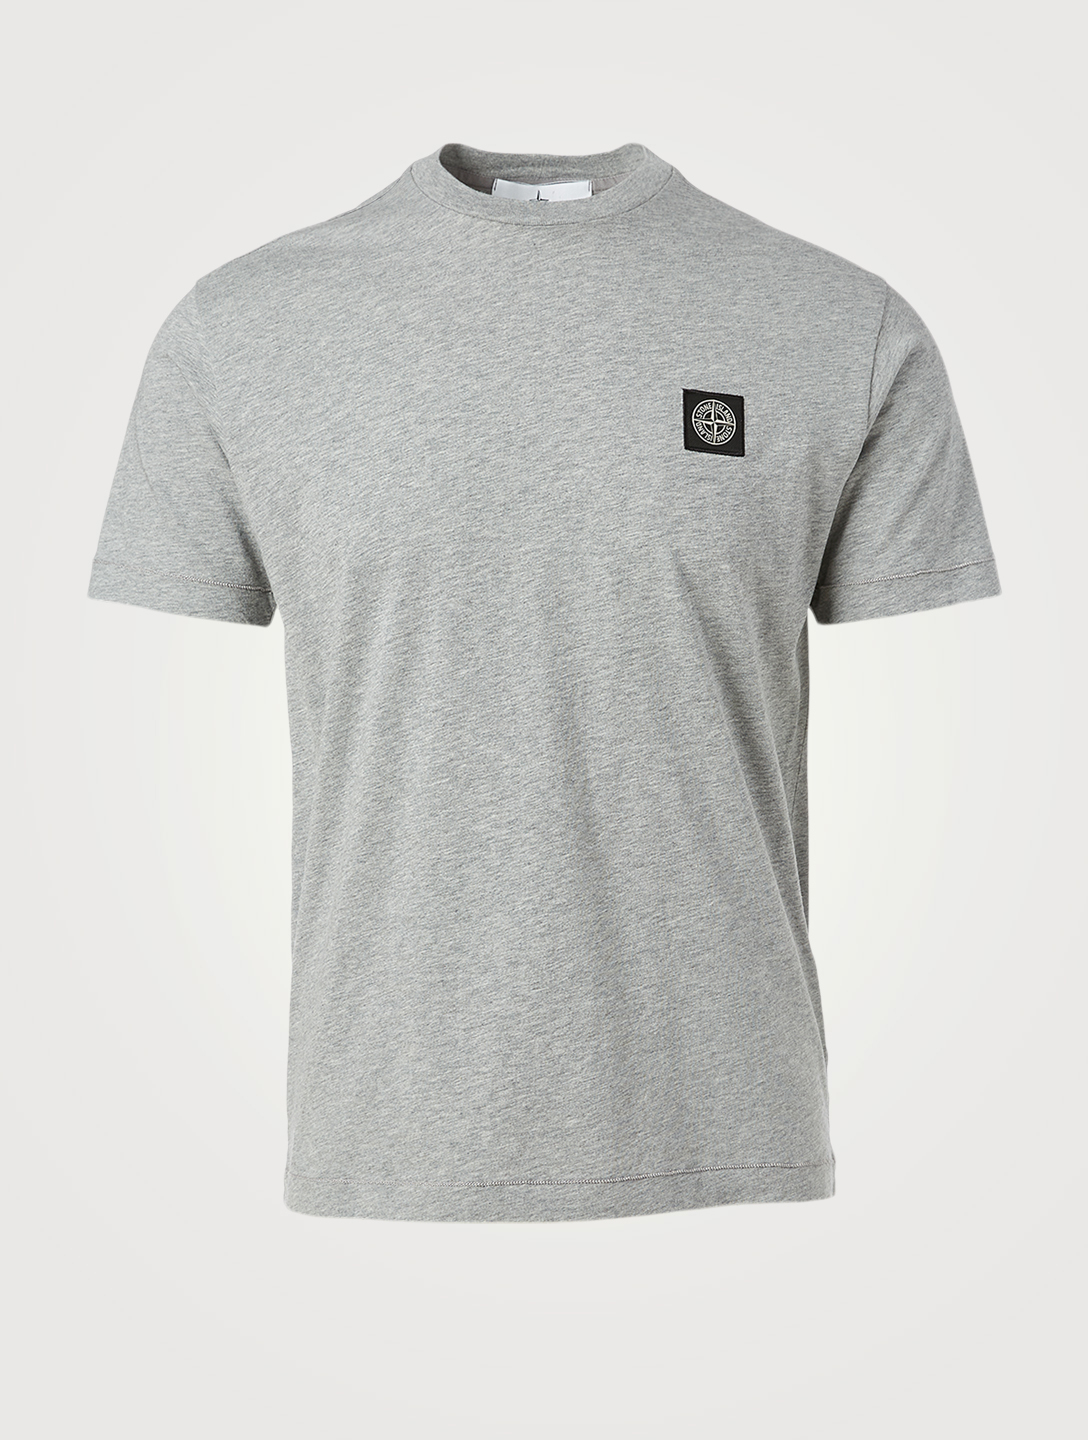 STONE ISLAND Cotton Roundneck T-Shirt Men's Grey